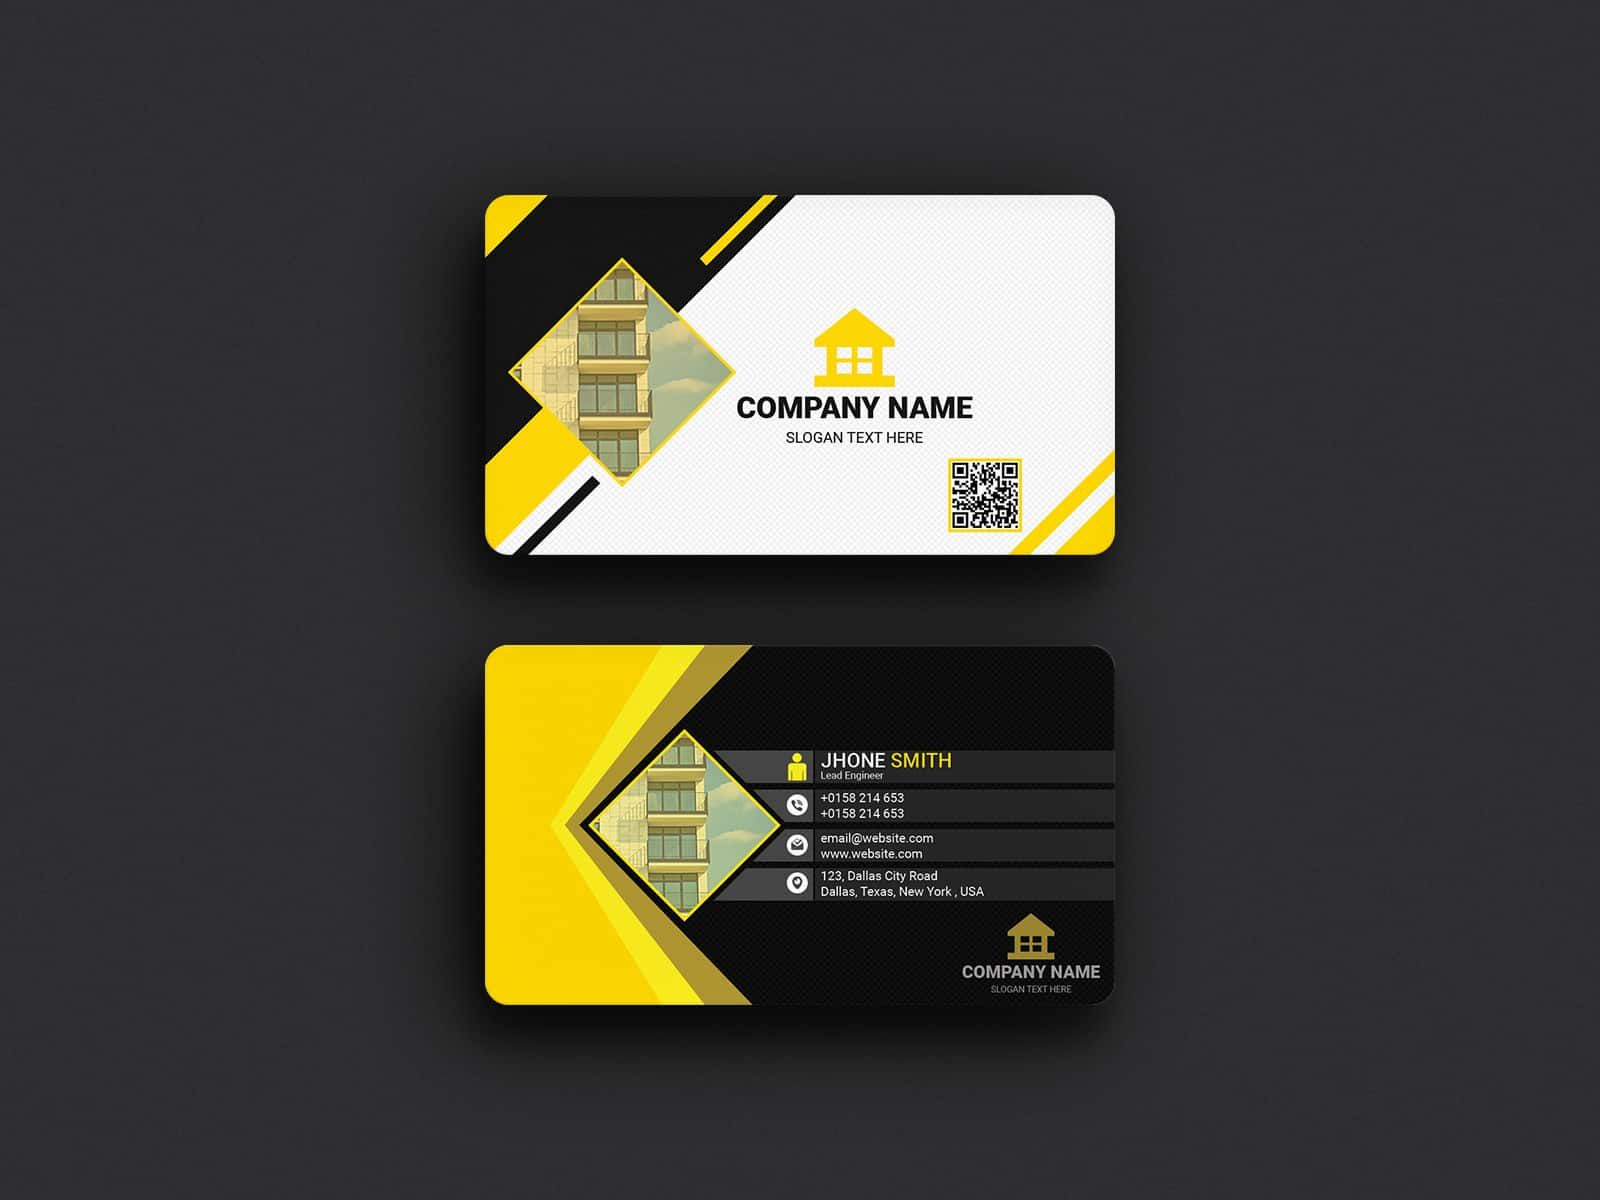 Benefits Of Choosing New York City Business Cards